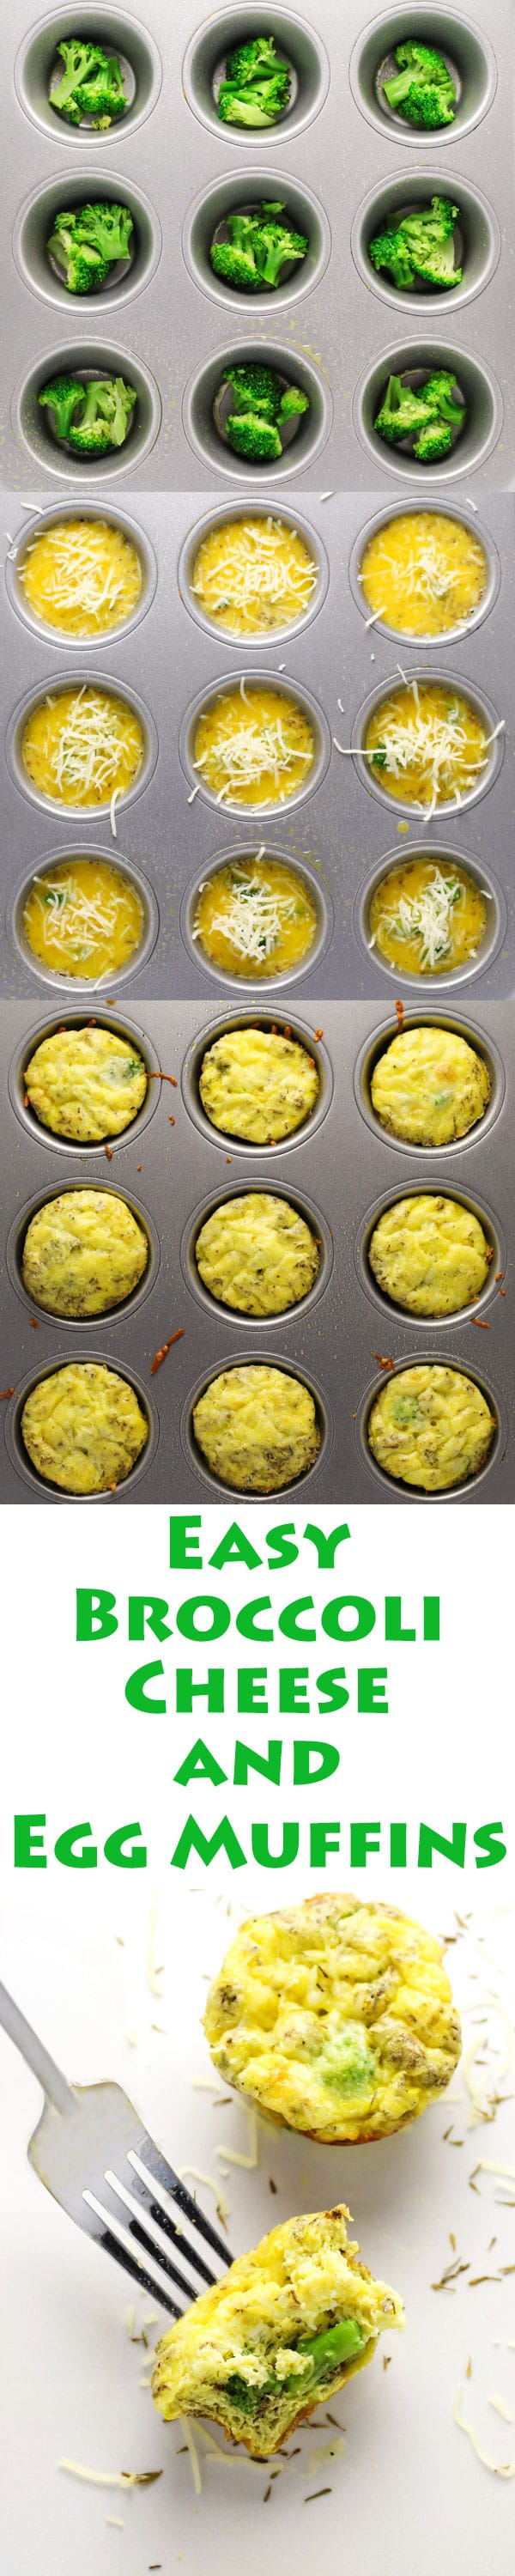 These Broccoli Cheese and Egg Muffins are so easy to make. Just add everything into a muffin tin and bake! This is perfect for breakfast on the go too, since it can be made ahead of time. | Tastefulventure.com